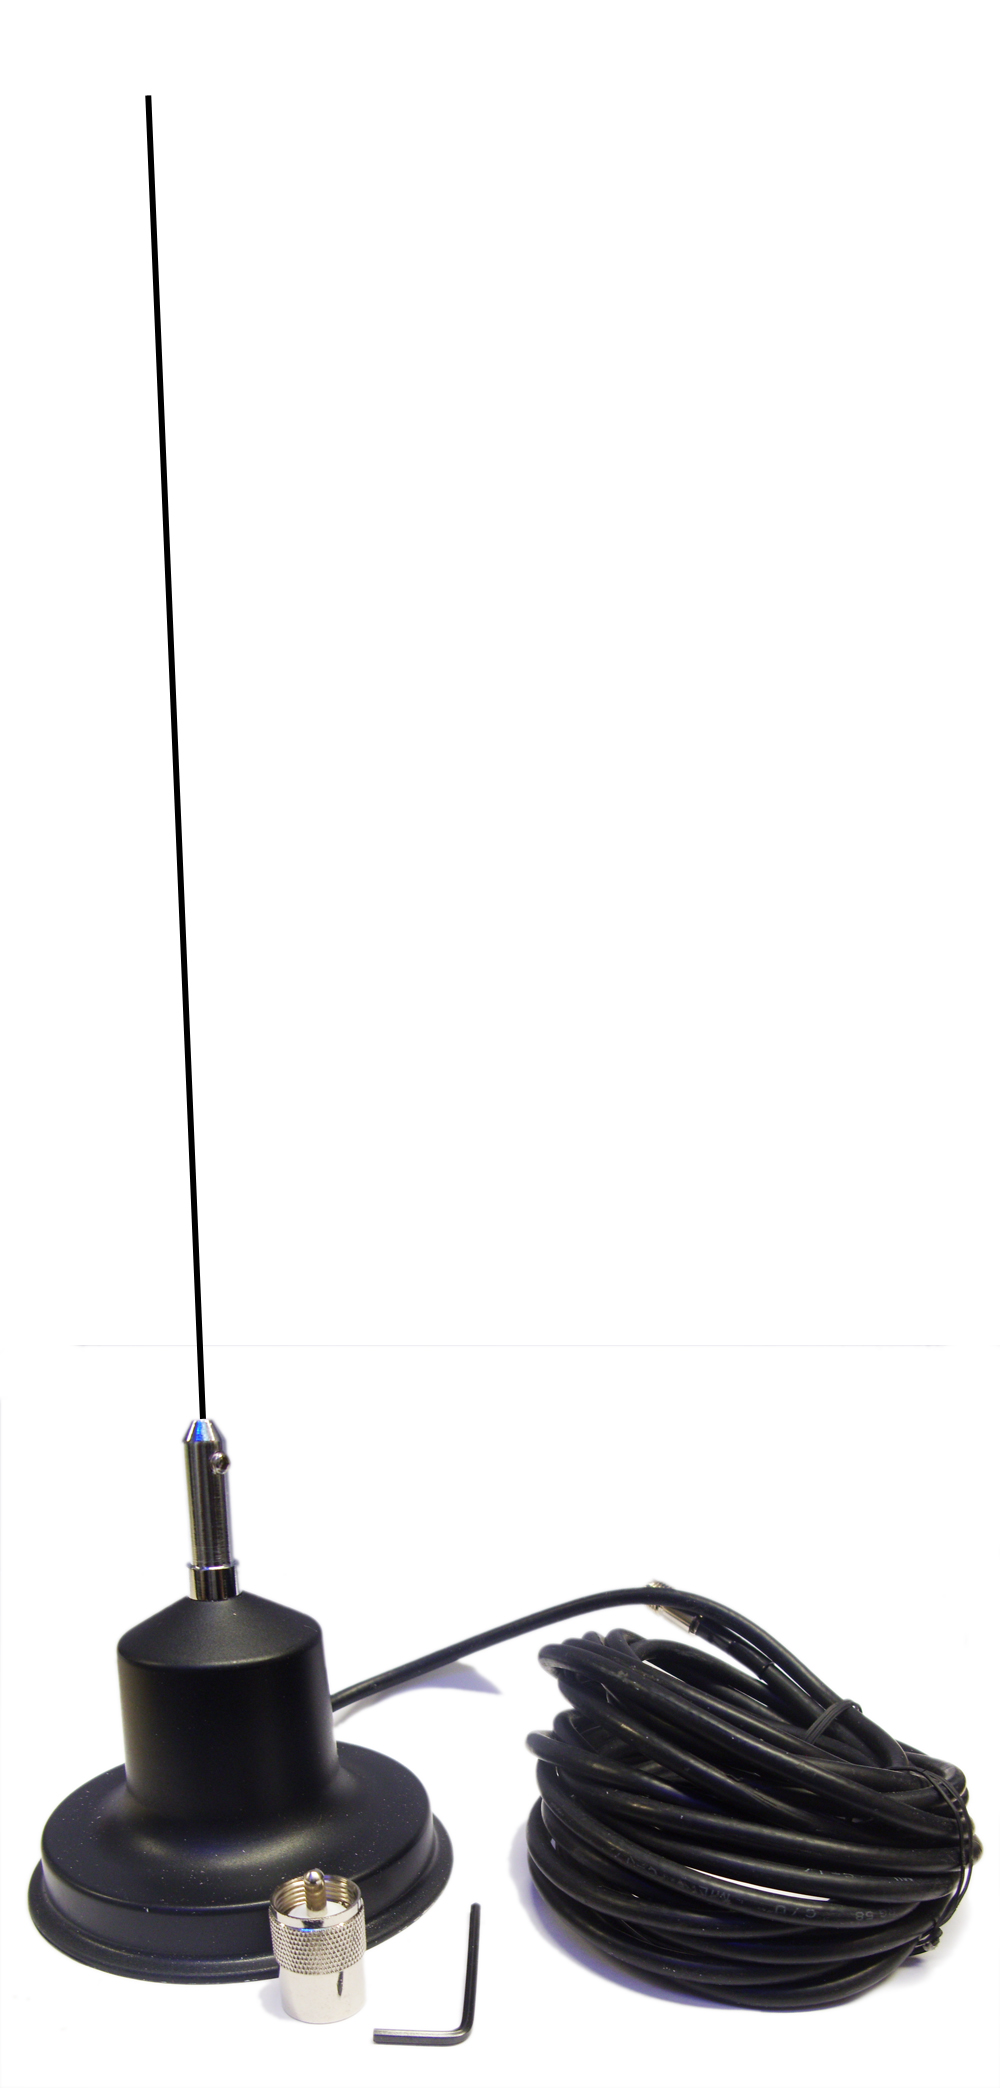 Magnetic Mount Cb Radio Antenna Ariel Mag With Mast Whip